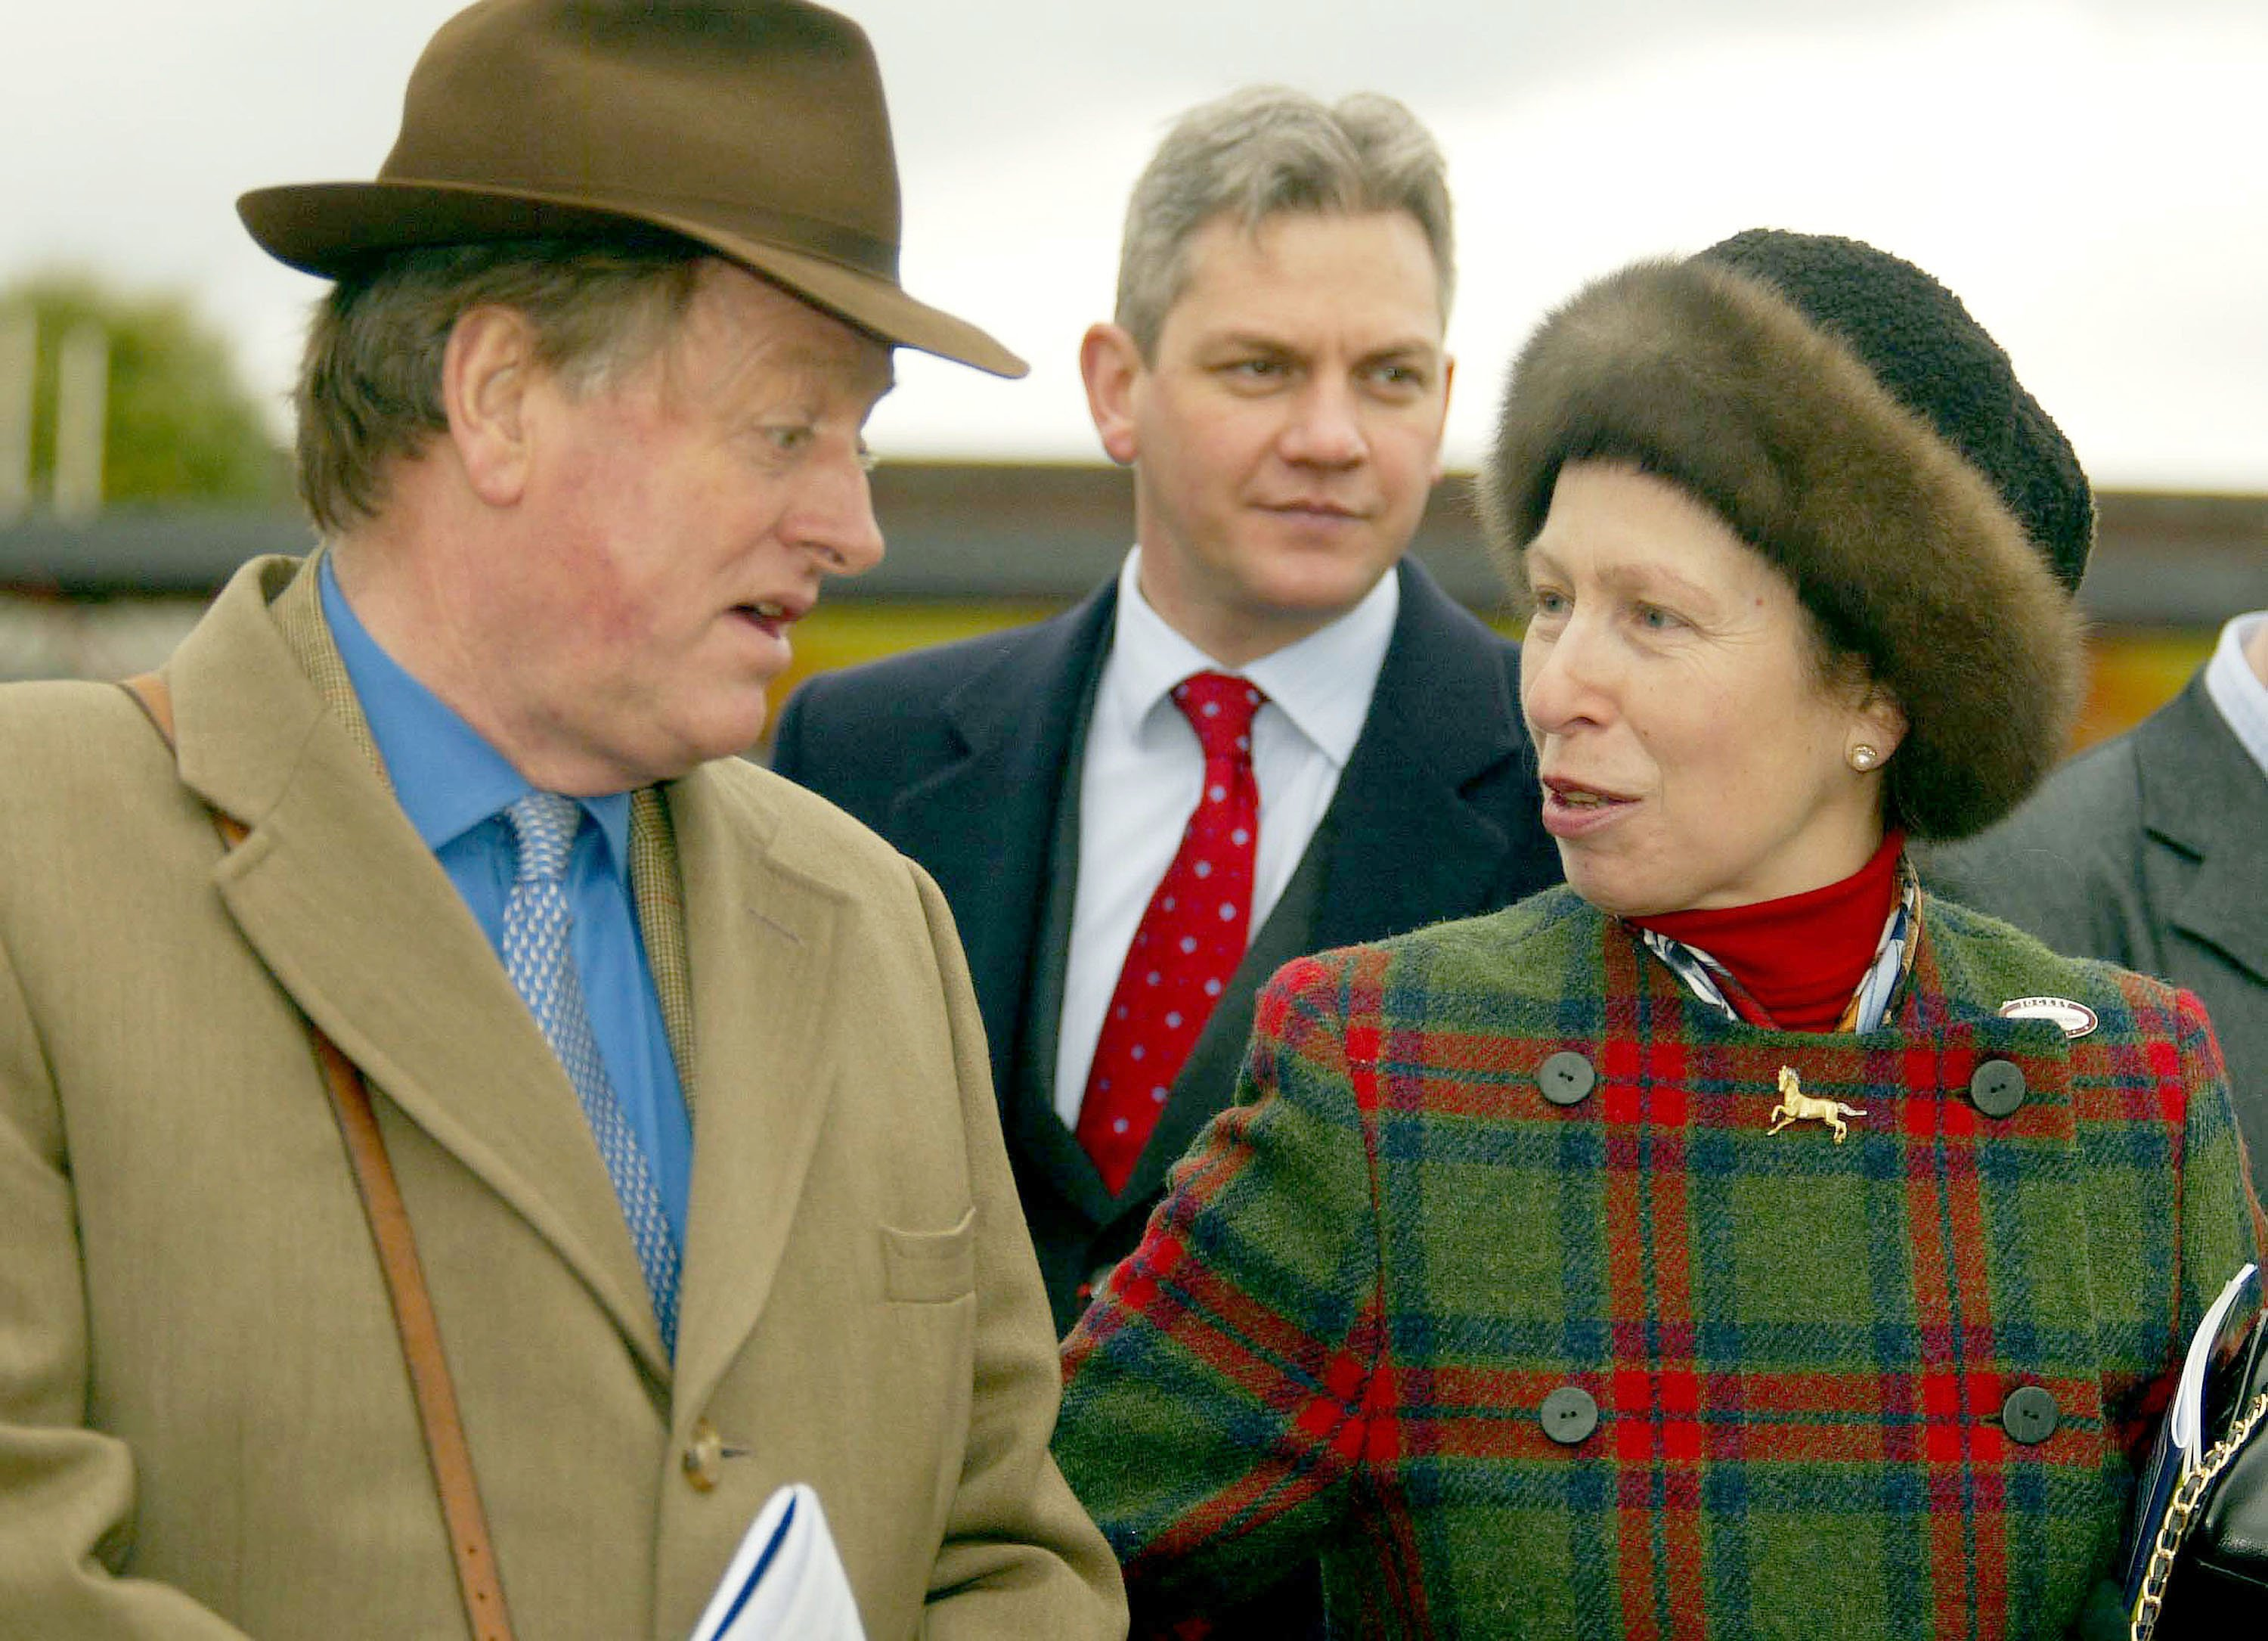 Princess Anne & Andrew Parker Bowles at the Cheltenham Gold Cup on March 18, 2004, in Cheltenham, England | Photo: Getty Images